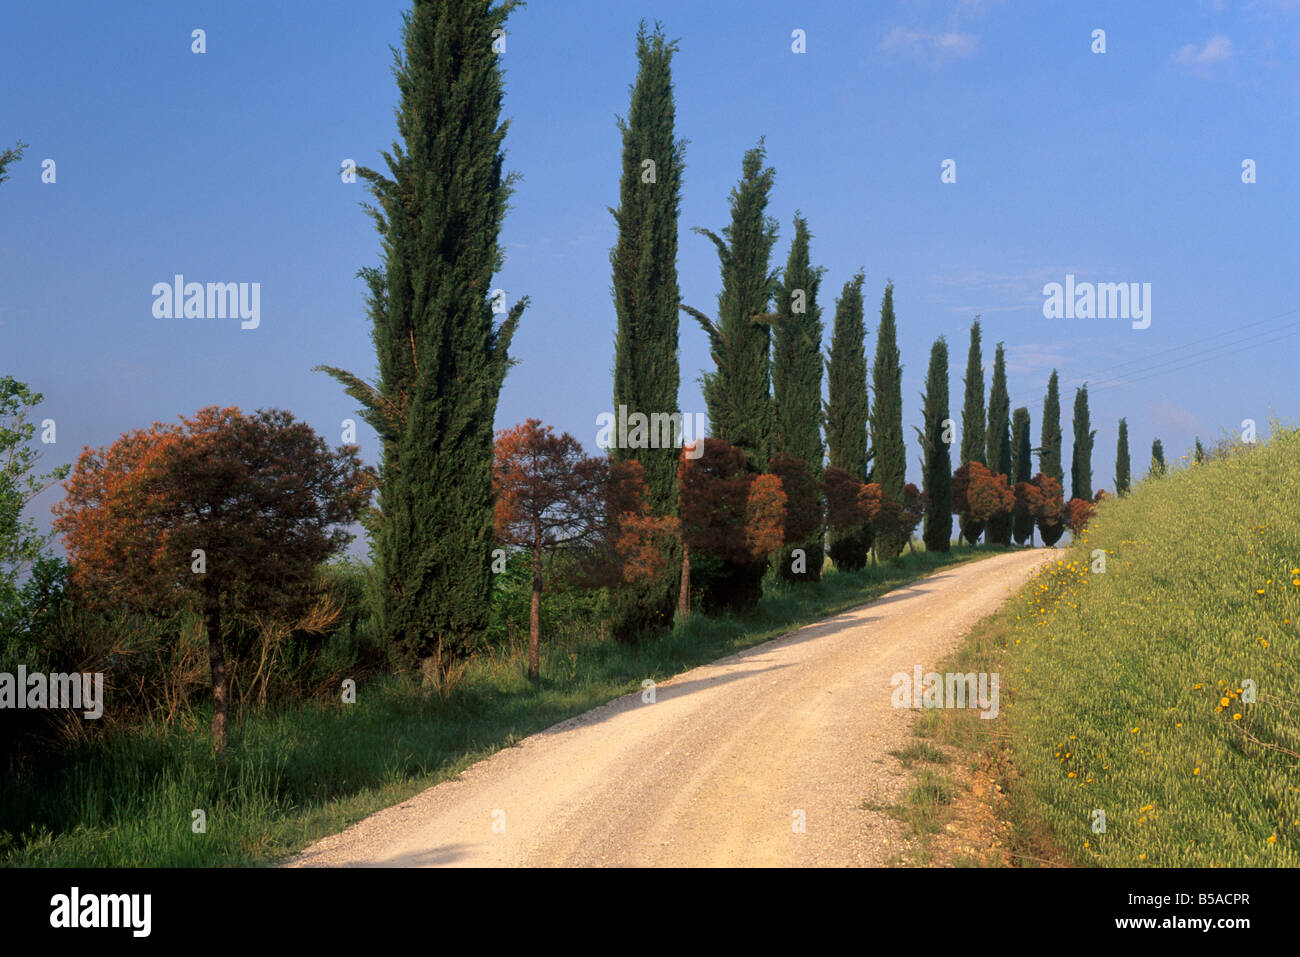 Alley with cypress trees near San Quirico d'Orcia, Val d'Orcia, Tuscany, Italy, Europe - Stock Image